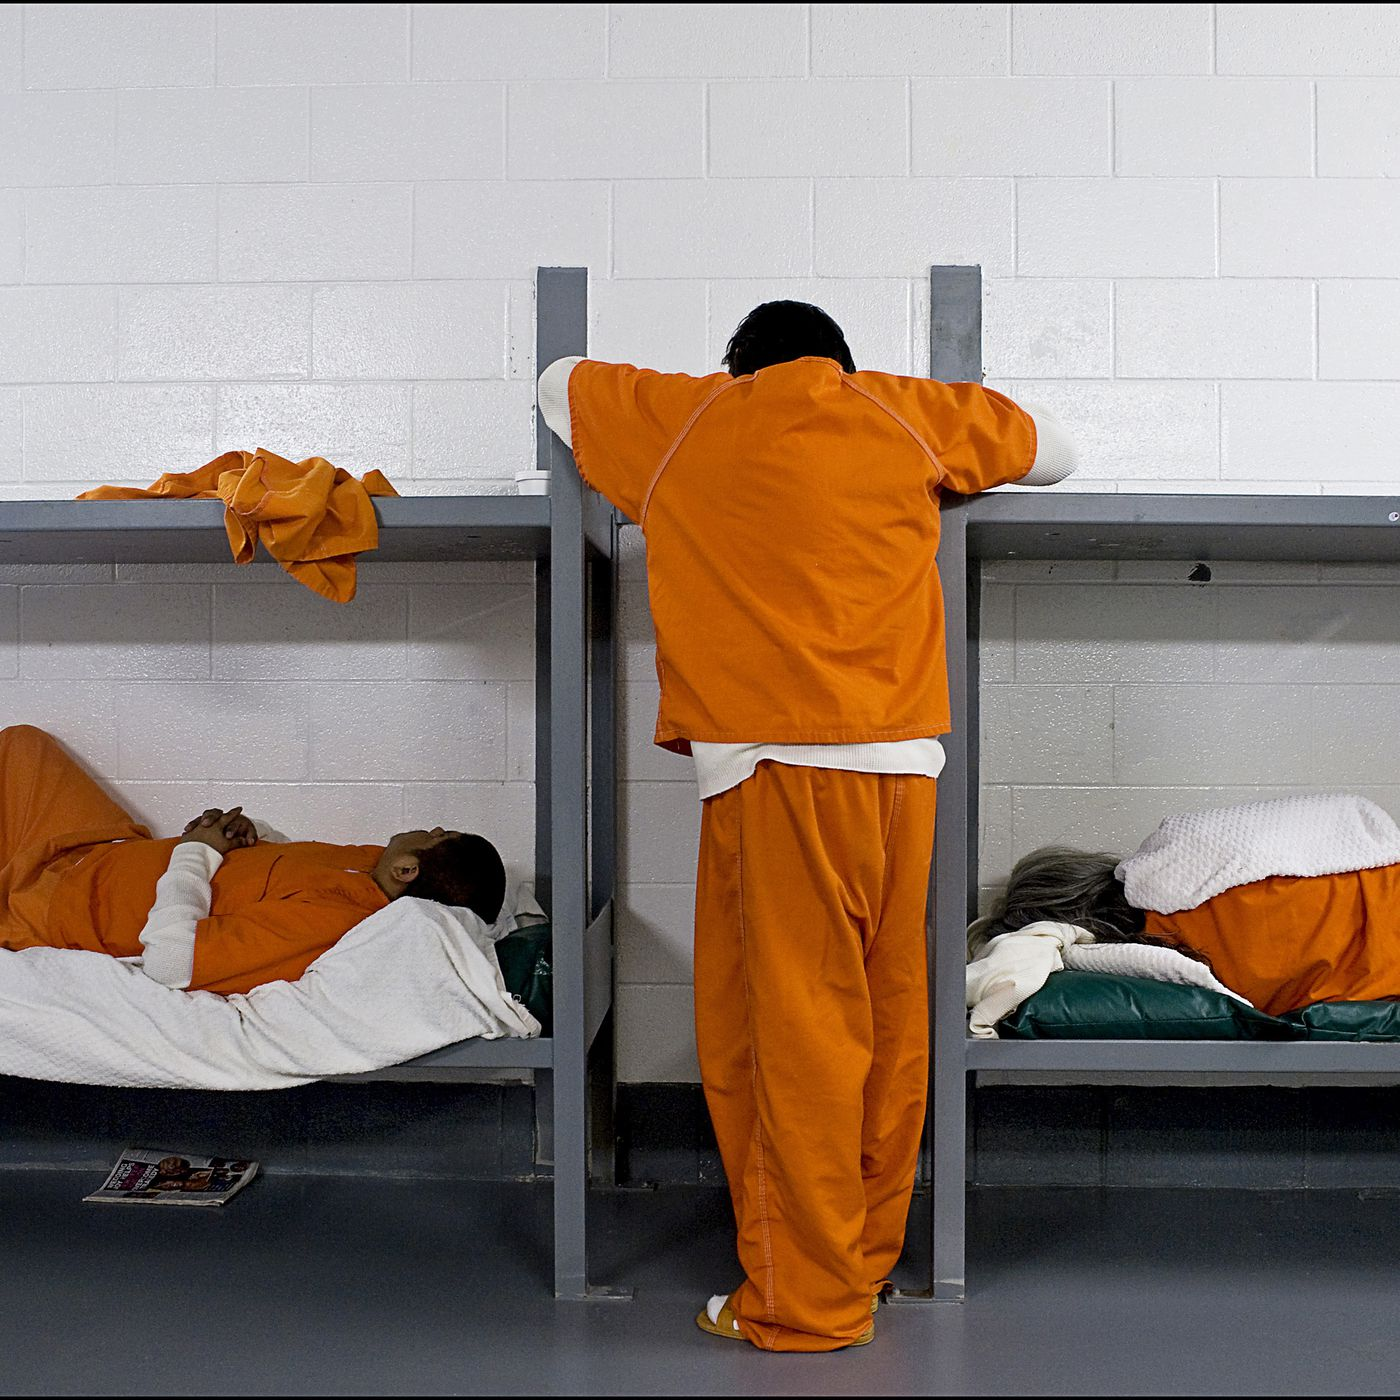 c016b0e700c What Inmates Really Wear in Prison - Racked